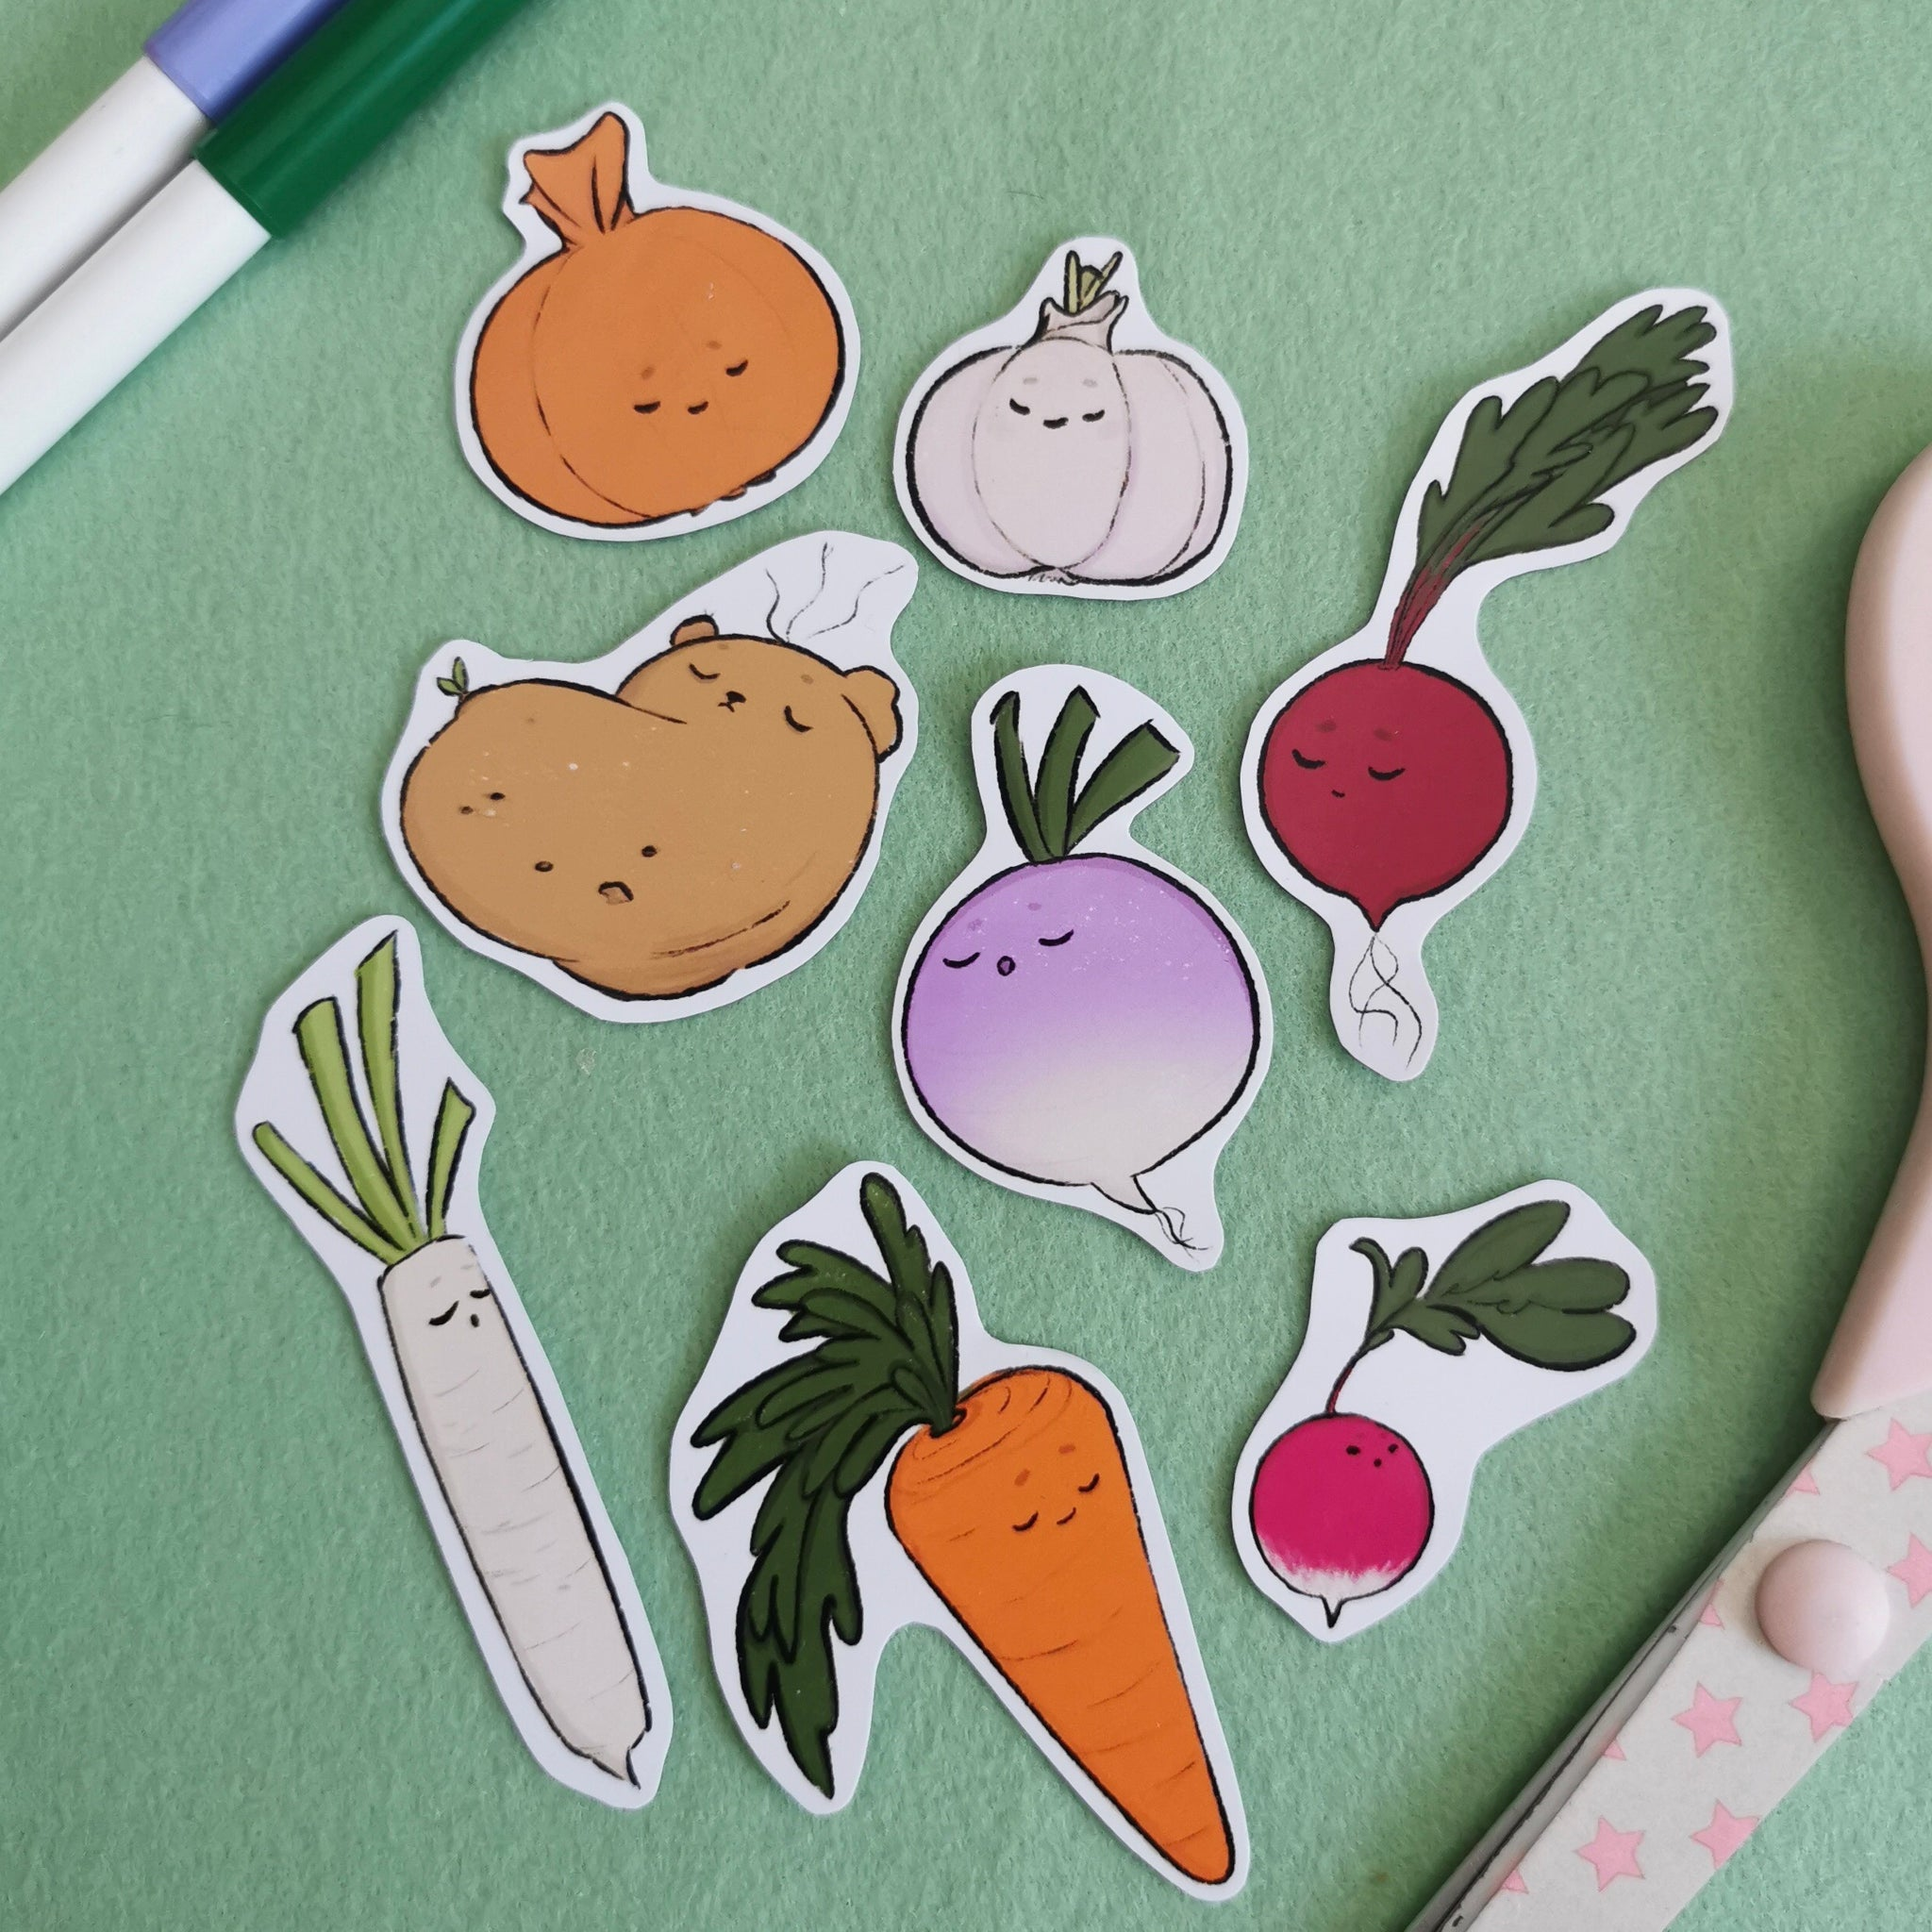 Sleepy Veggies Sticker Pack